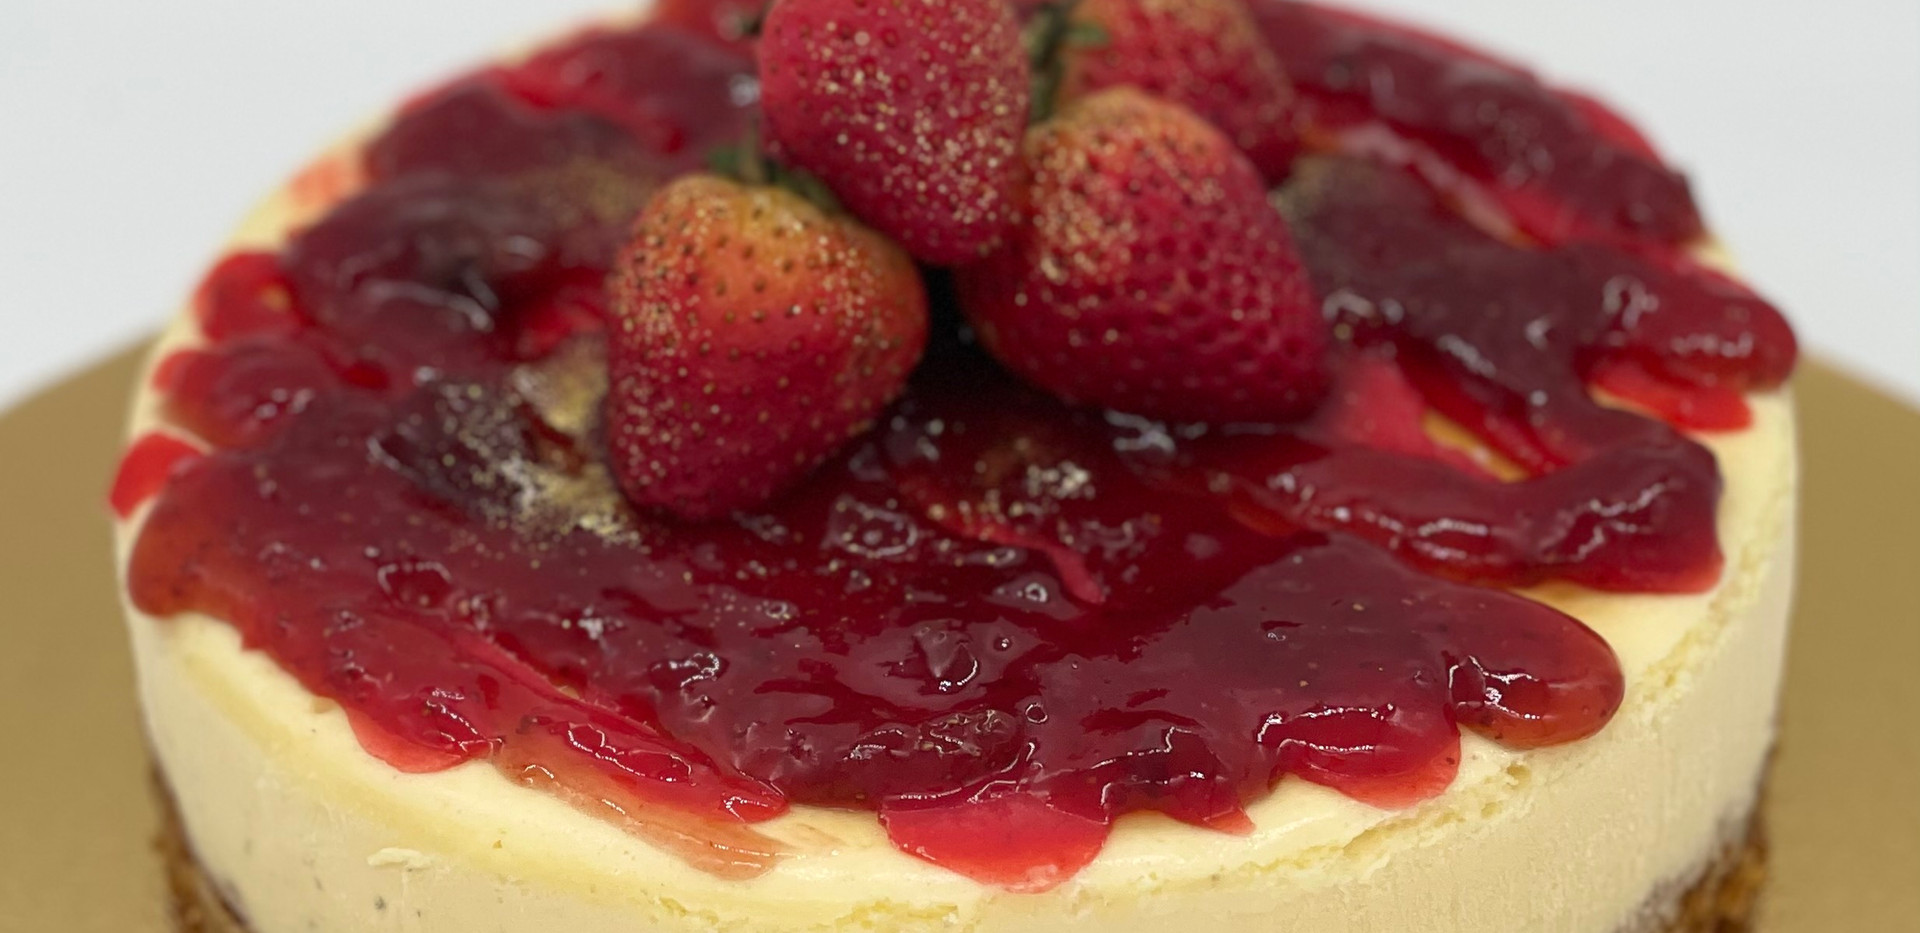 Strawbery Topping Cheesecake